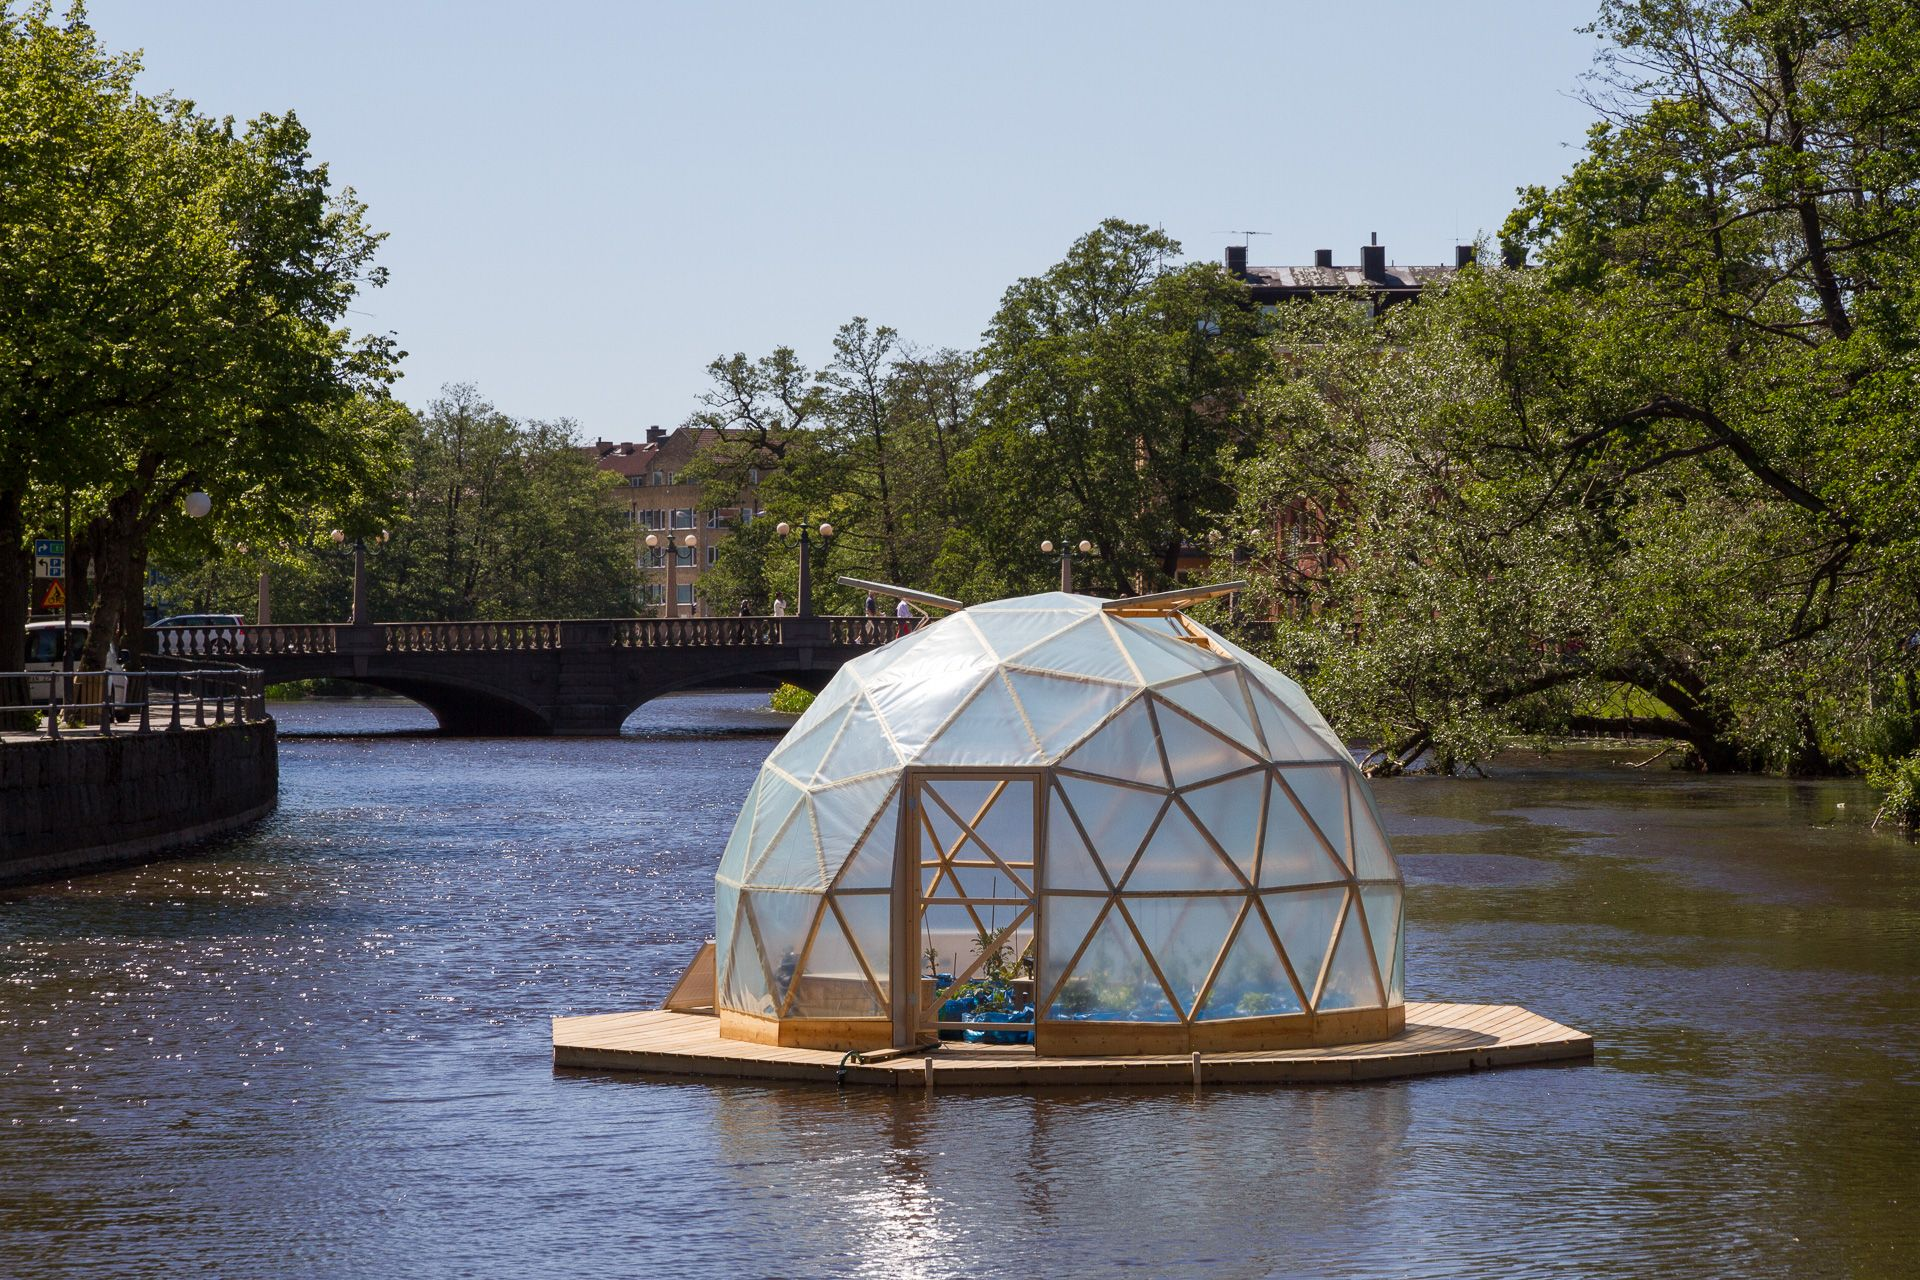 Build A Floating Platform, Put A Dome On It And